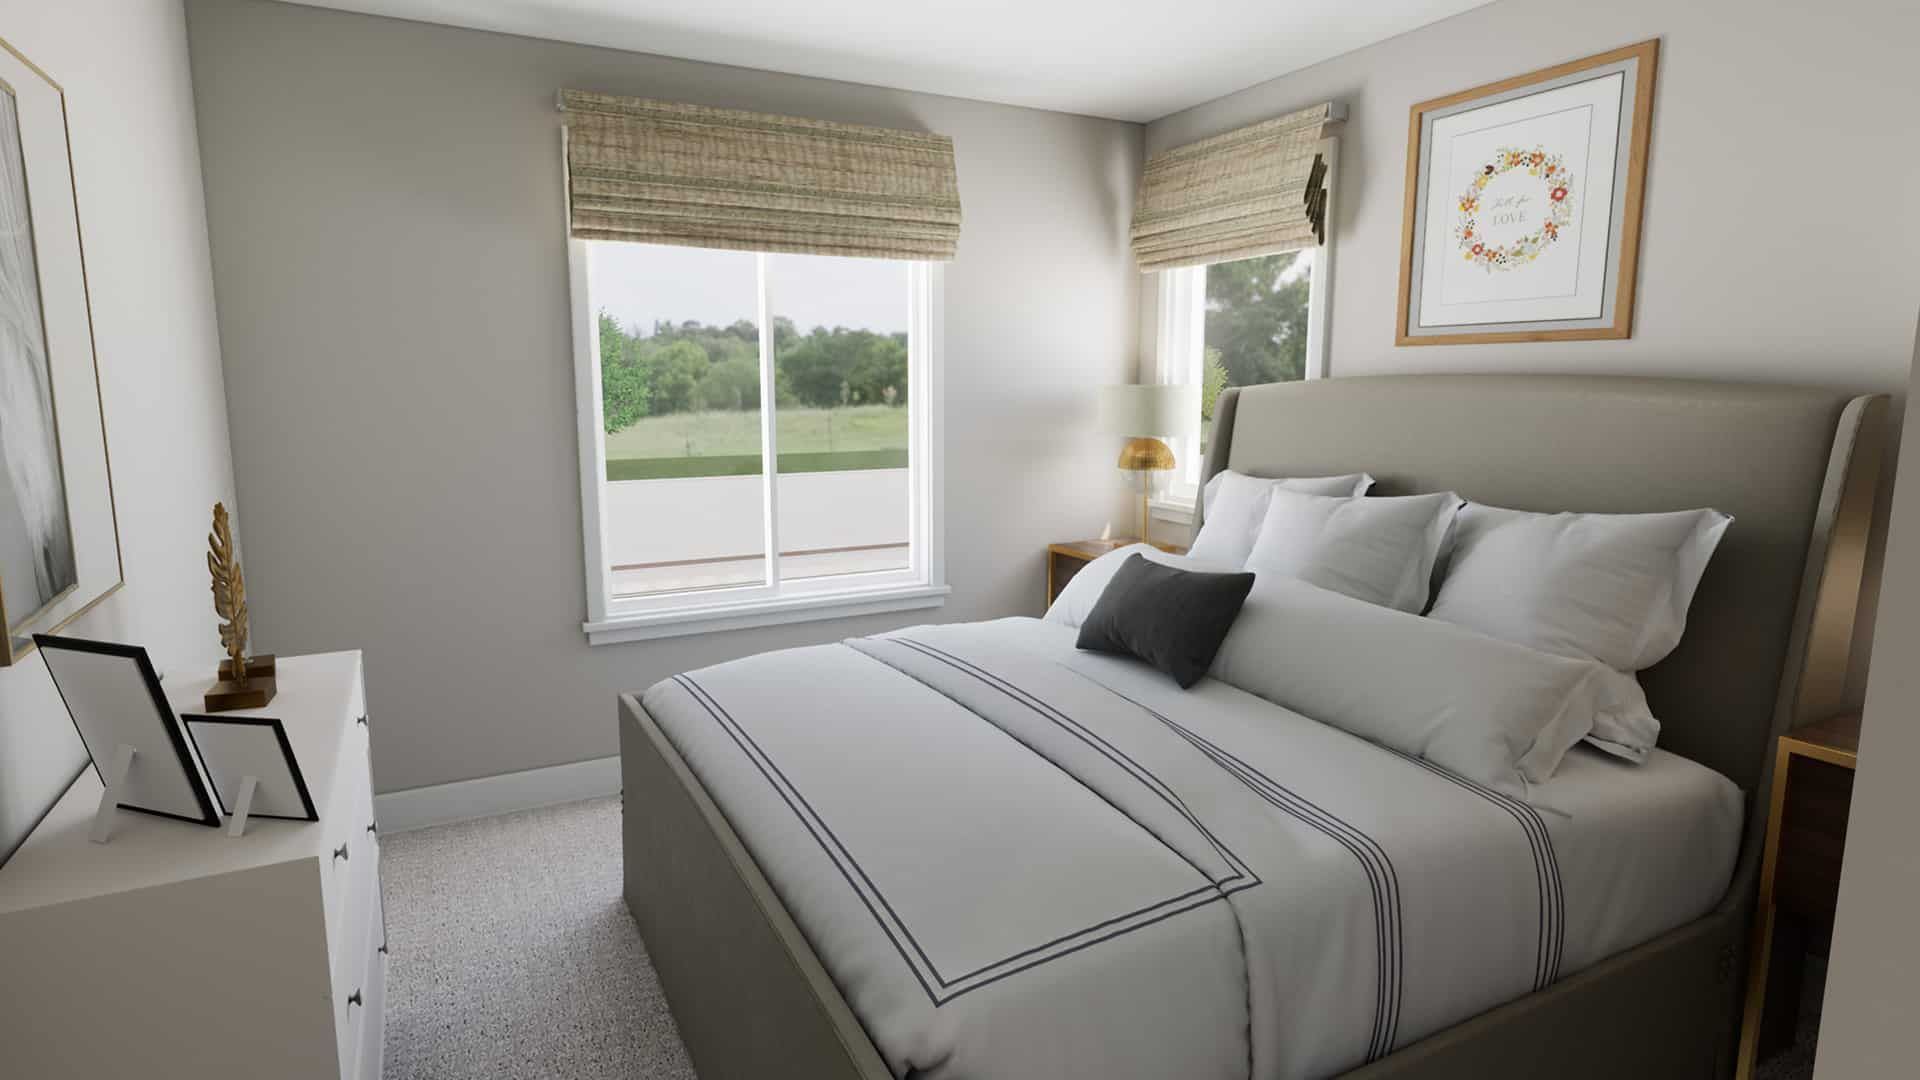 Bedroom featured in the Plan A-270 By Tri Pointe Homes in Bremerton, WA